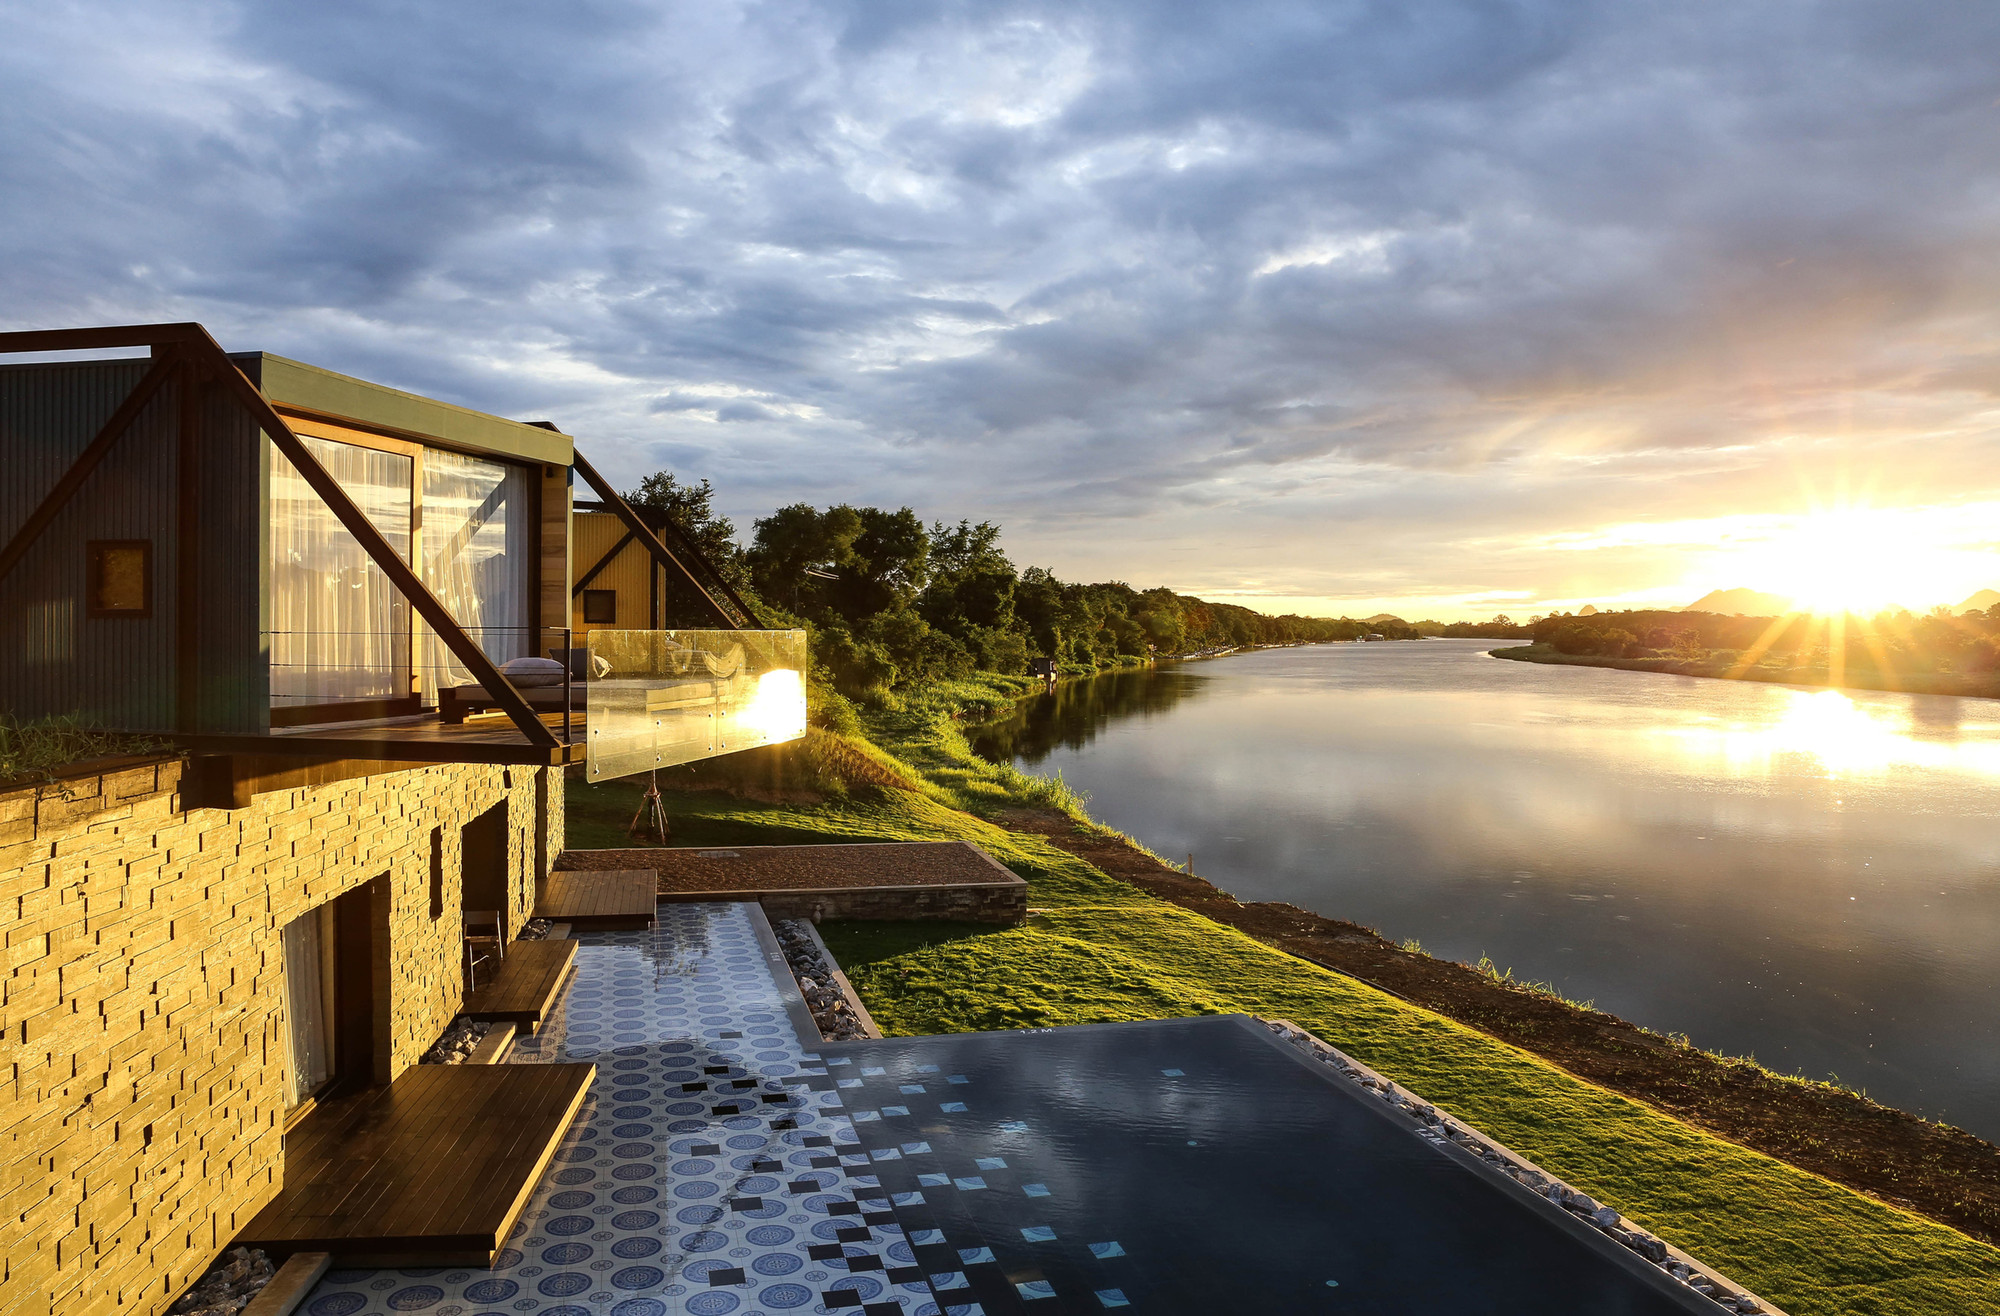 X2 River Kwai / agaligo studio, Courtesy of agaligo studio